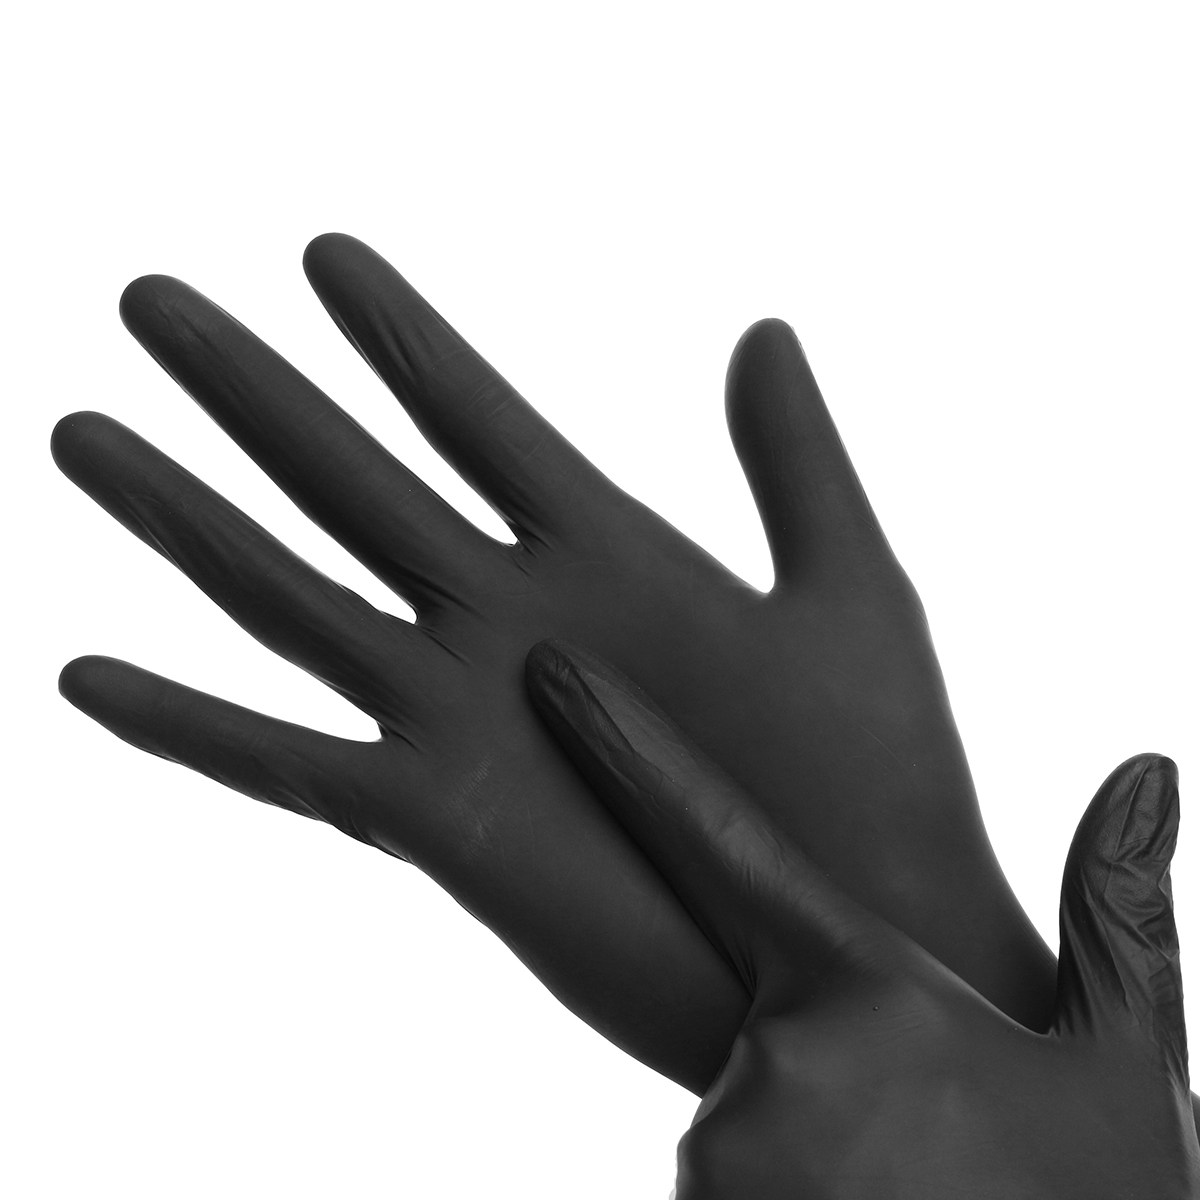 Hot Sale 100pcs Disposable Soft Black Tattoo Gloves Dental Medical Nitrile Latex Sterile Gloves Permanent Makeup Body Art Size M L Xl Tattoo Accesories